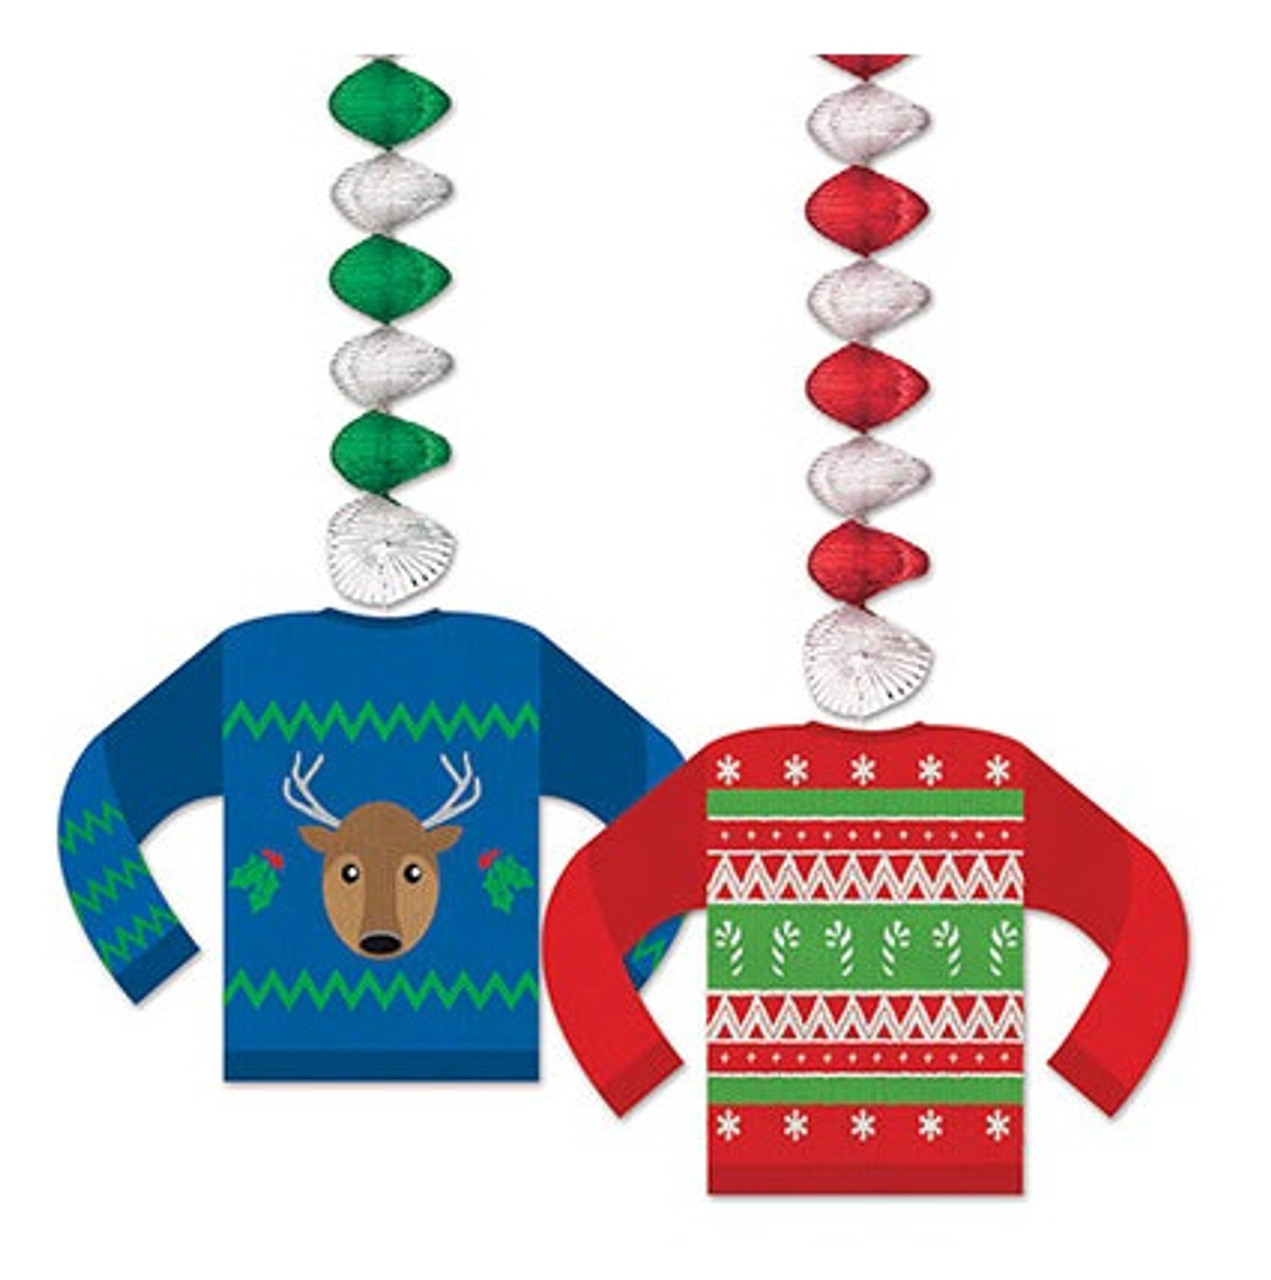 club pack of 24 ugly sweater dangler christmas hanging decorations 30 32146772 - Christmas Hanging Decorations